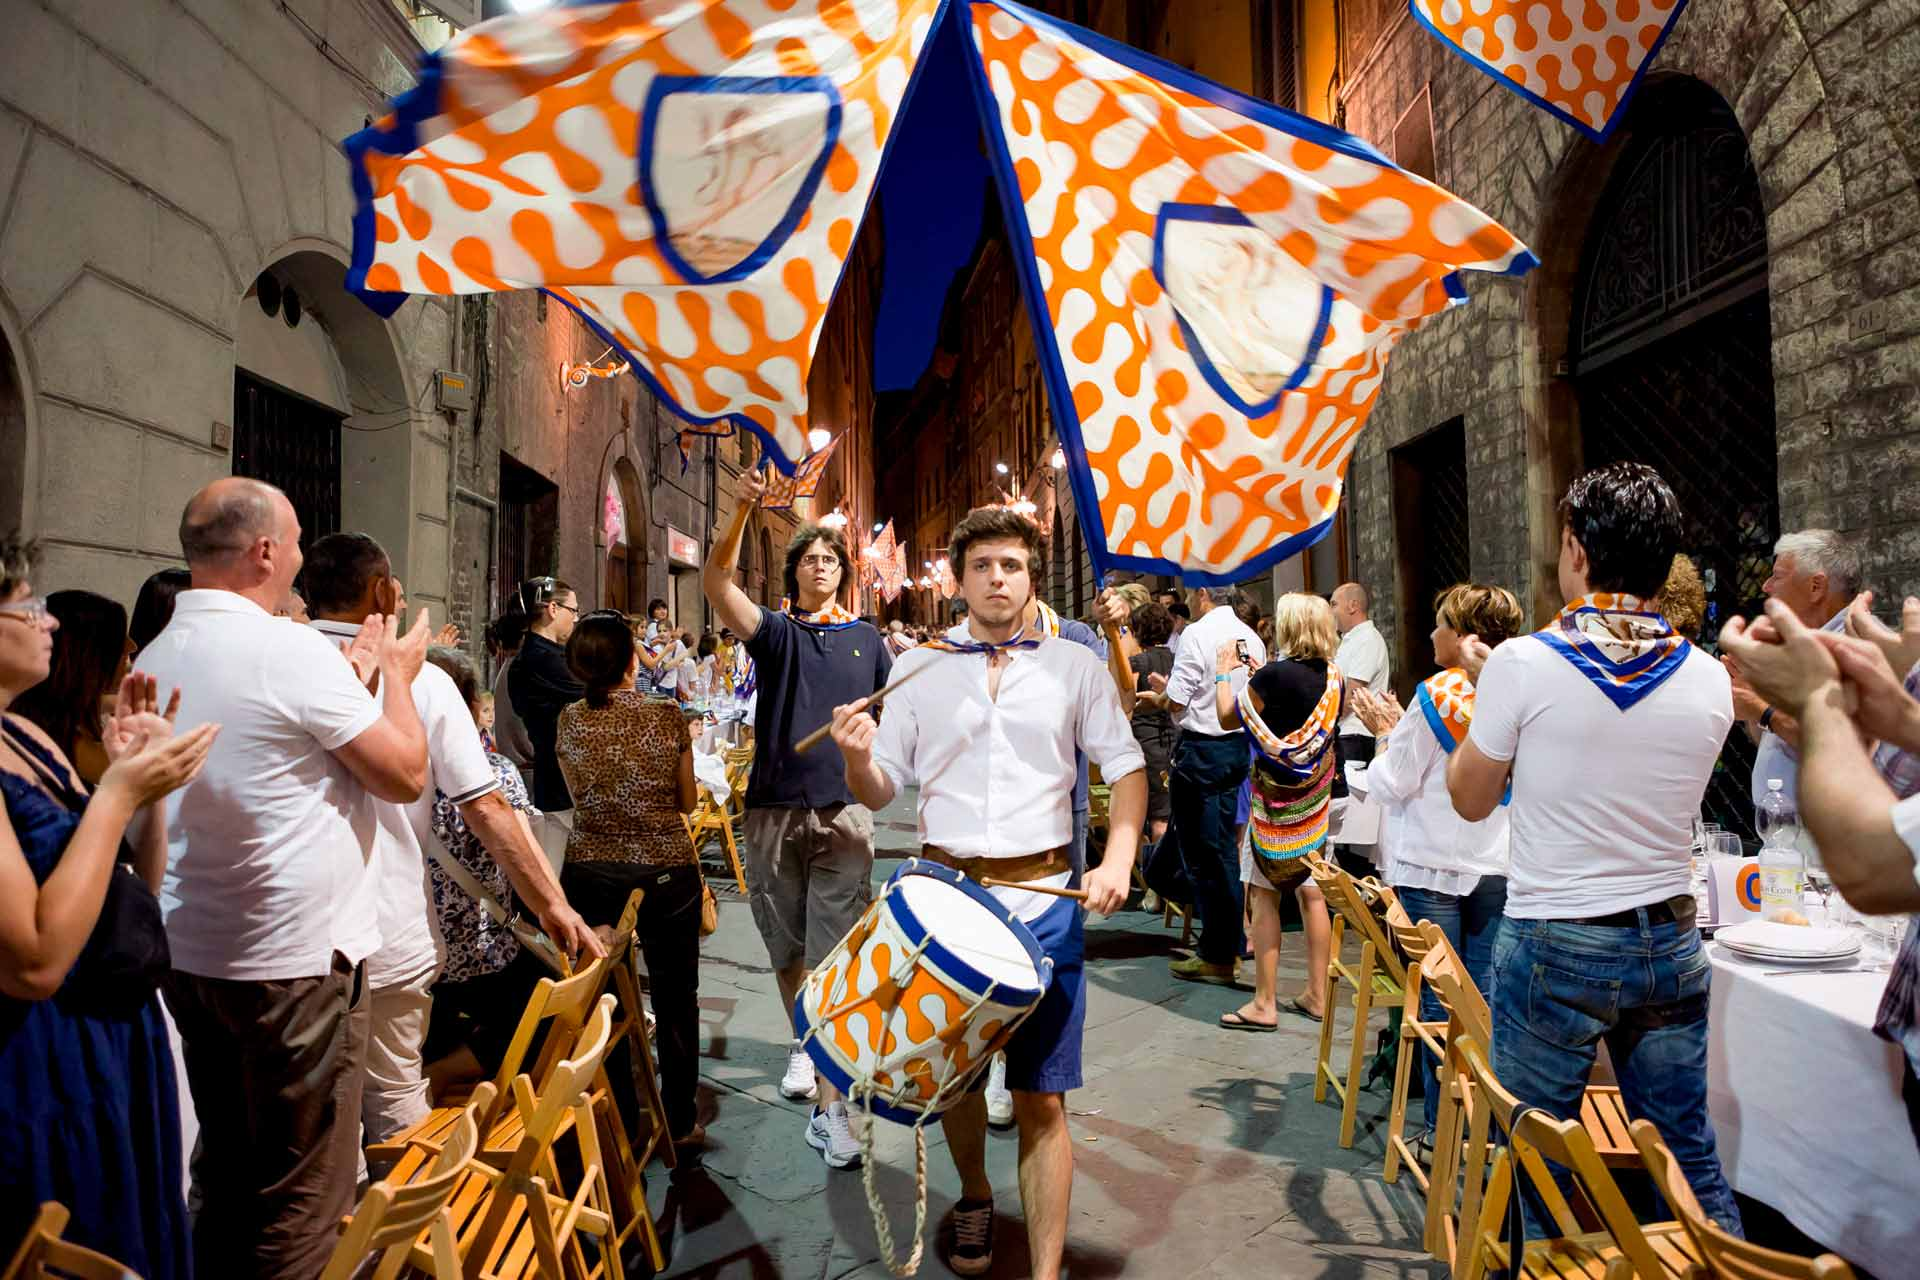 DINNER IN THE CONTRADA - The General Rehearsal dinner is the occasion in which one can most deeply penetrate the essence of the Palio.